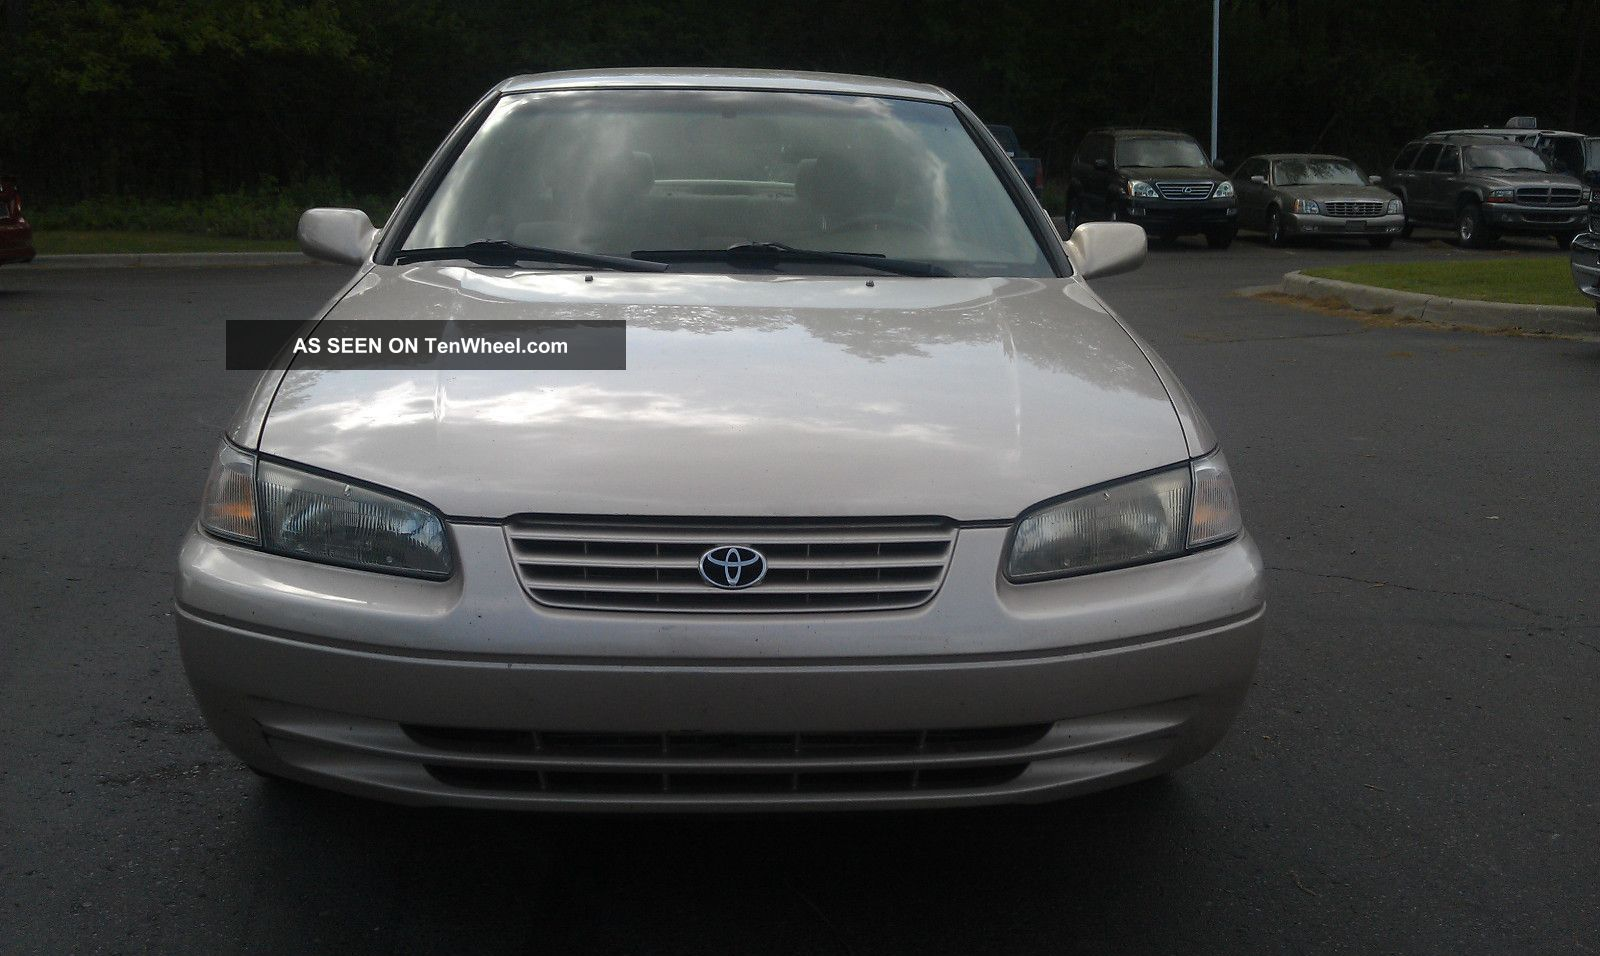 1999 toyota camry le 6 cyl 3 0l just detailed good to go runs strong good. Black Bedroom Furniture Sets. Home Design Ideas